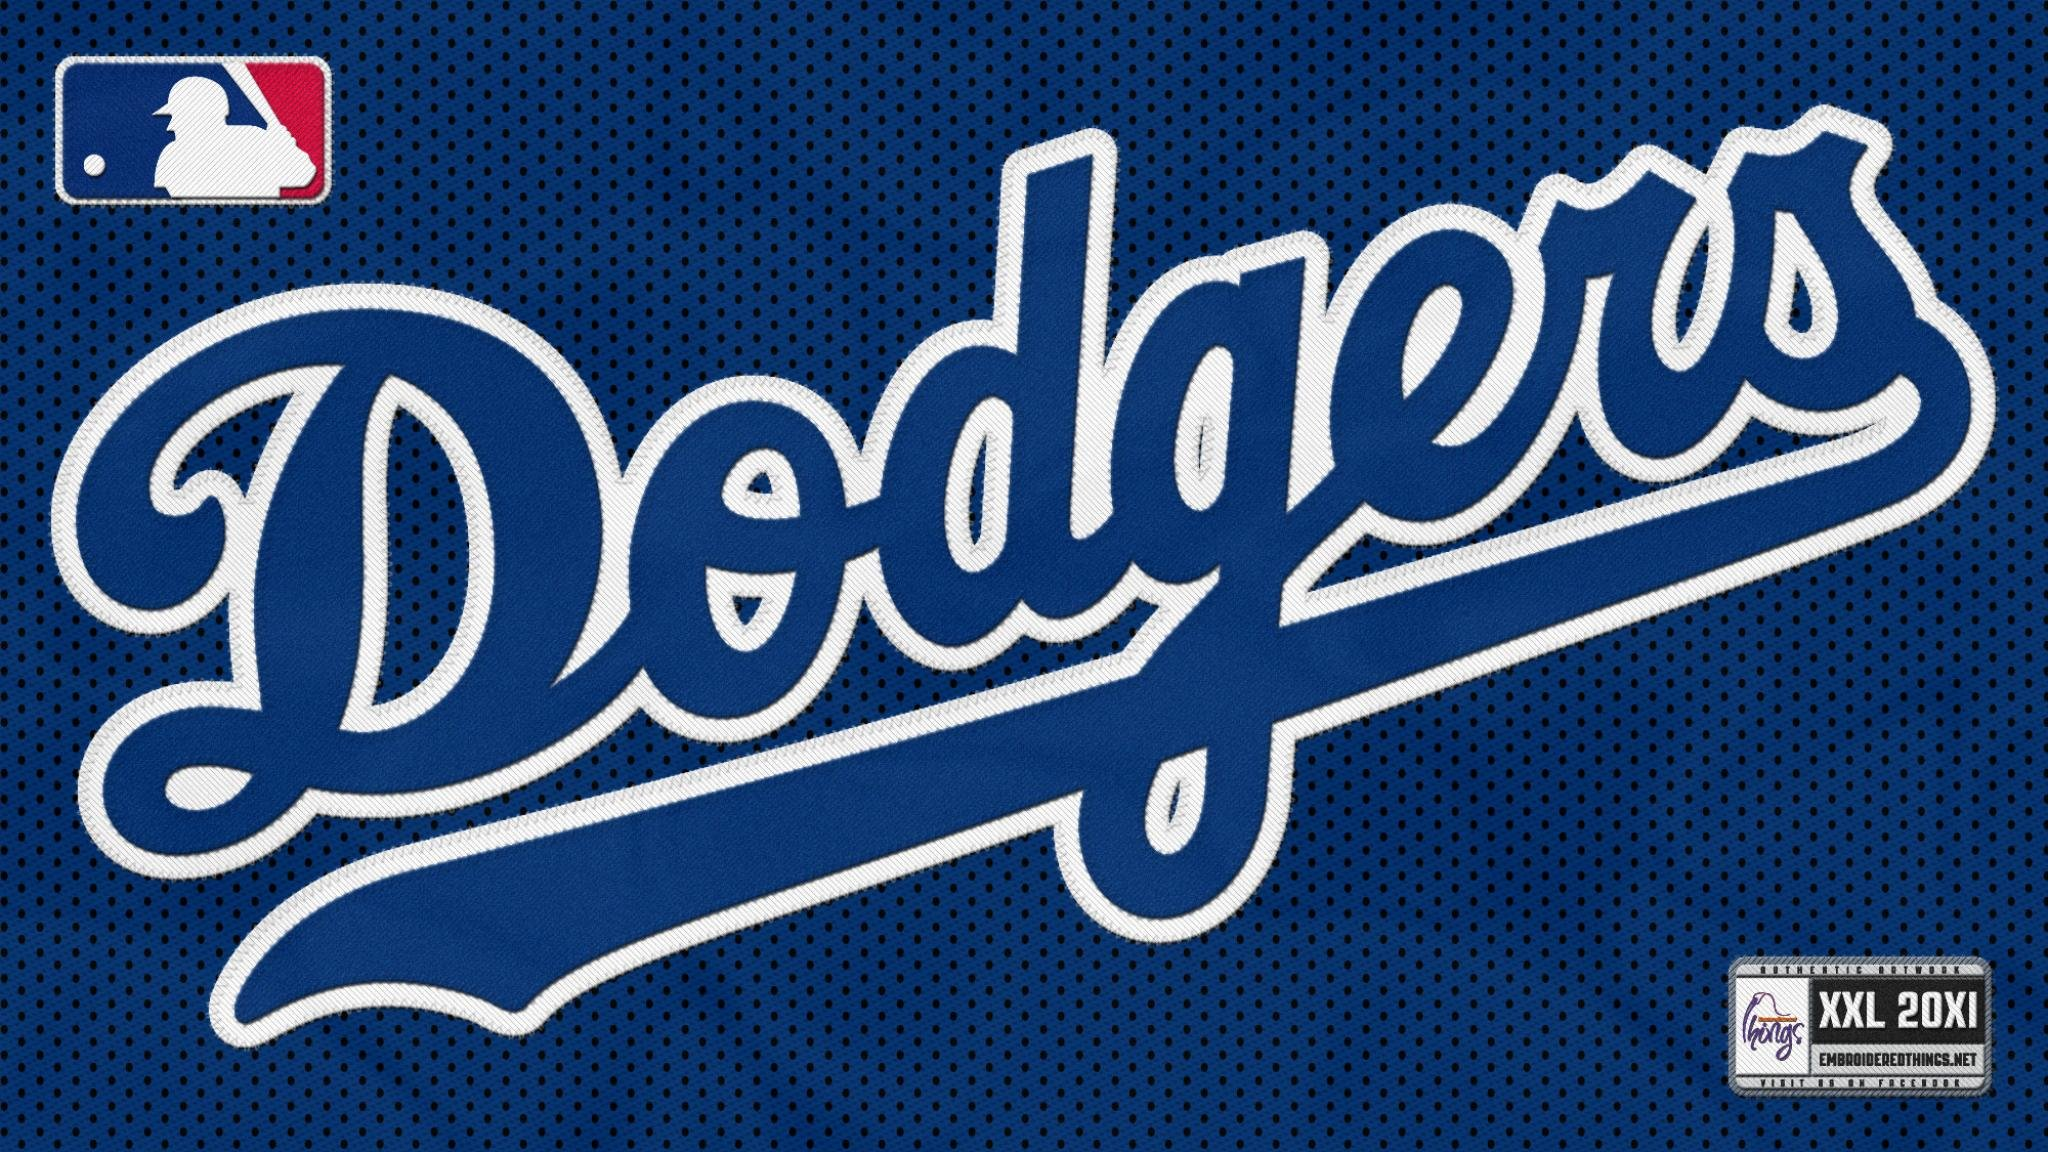 Best Los Angeles Dodgers Wallpaper Id 69428 For High Resolution Hd 2048x1152 Desktop